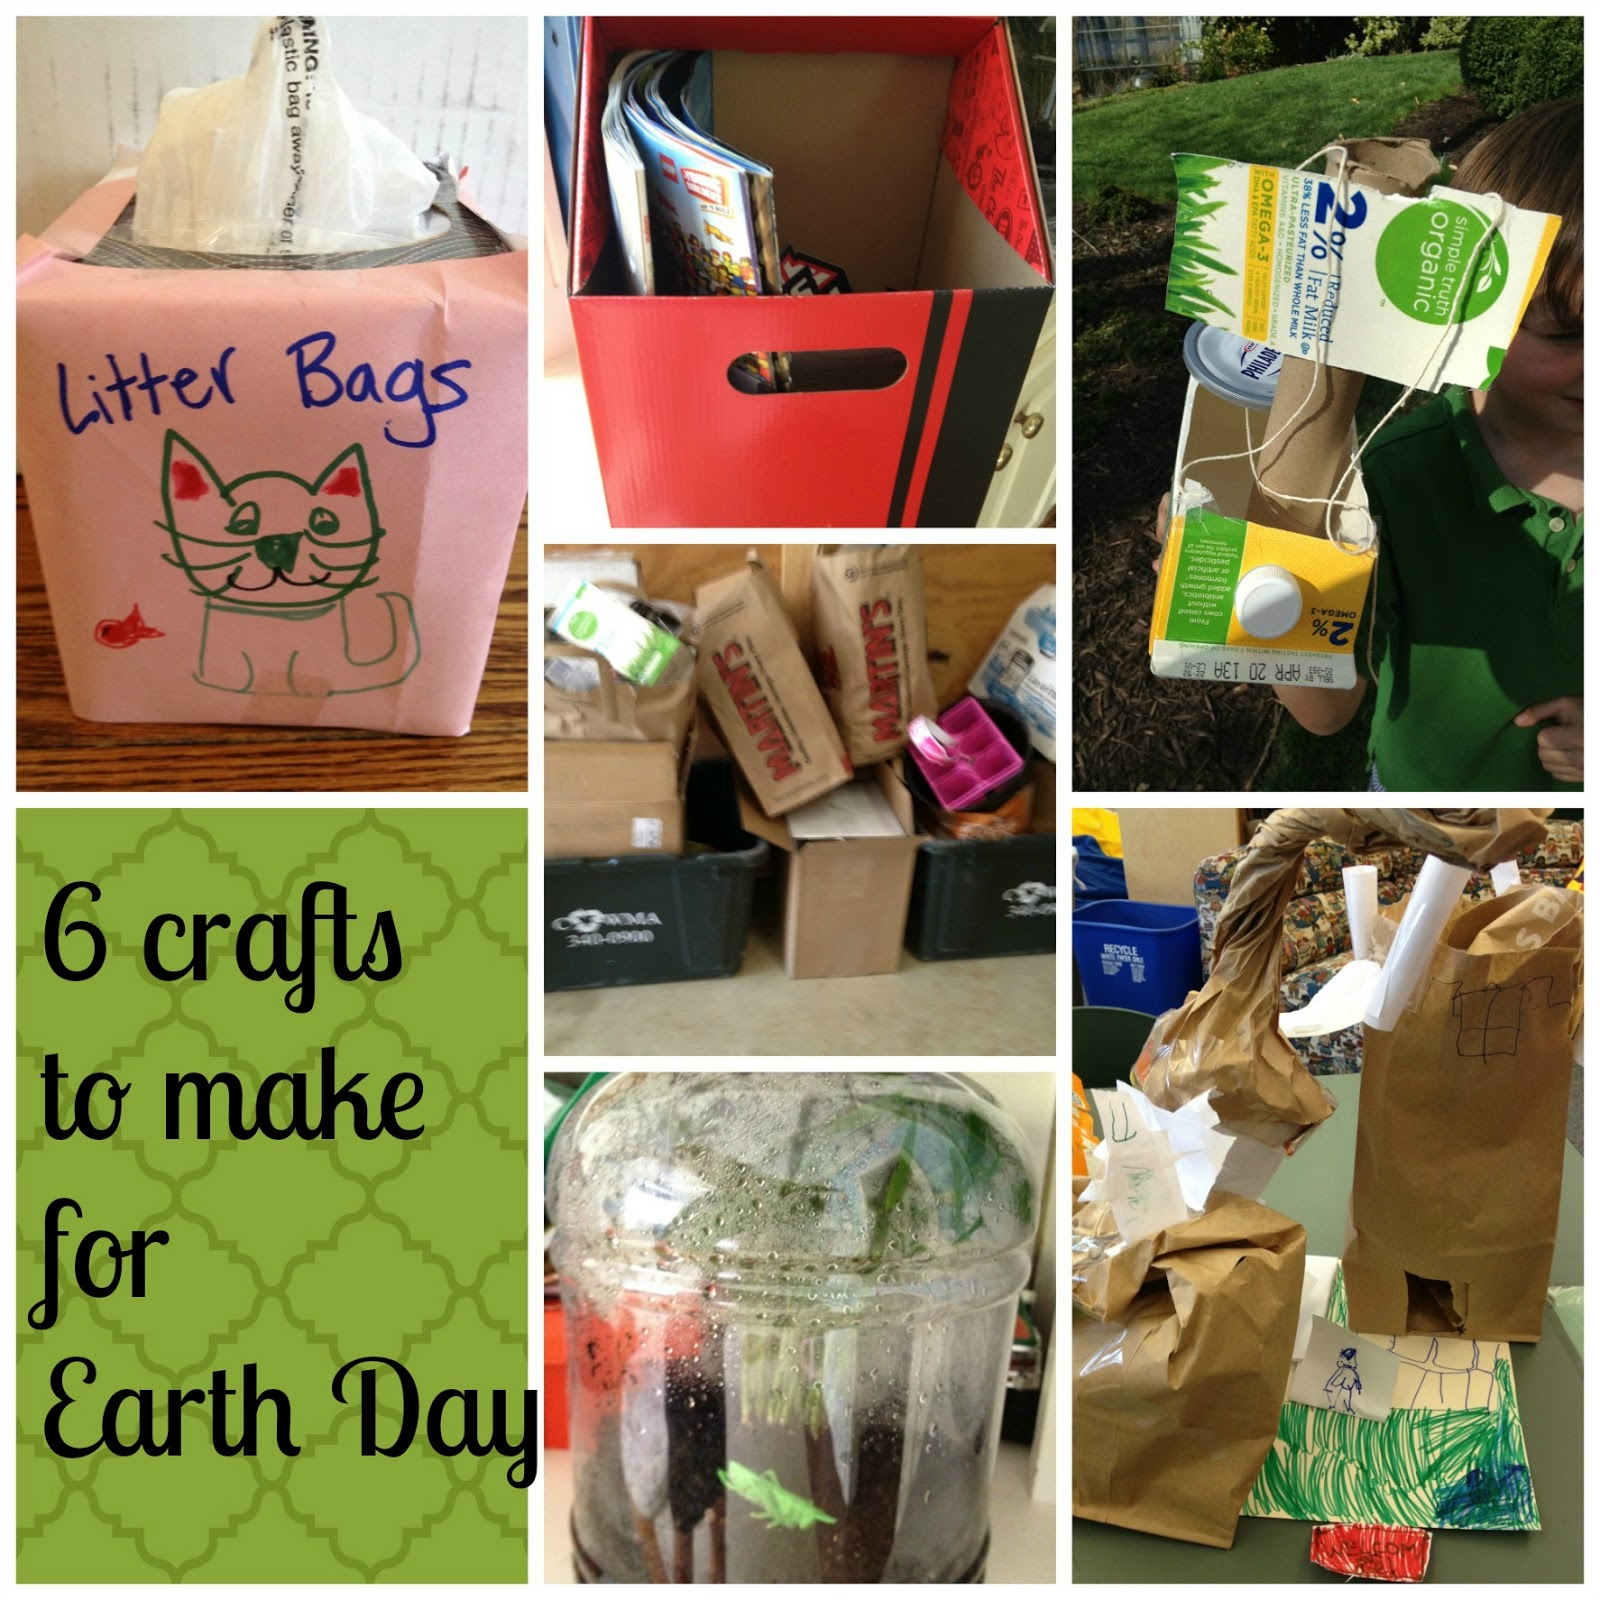 Making Crafts From Recycled Materials For Earth Day